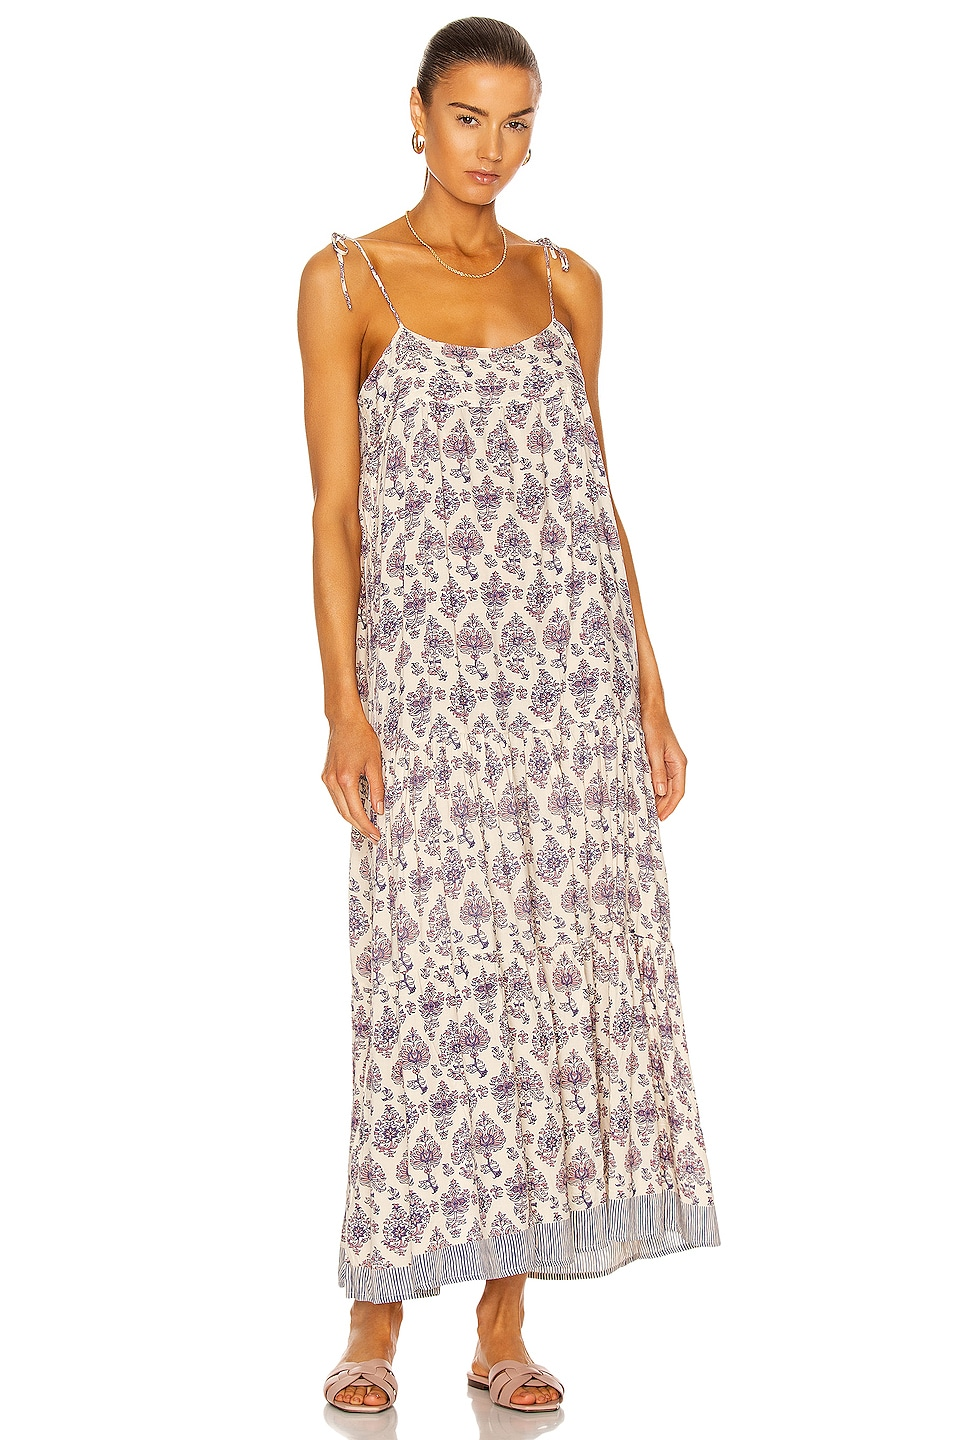 Image 1 of Natalie Martin Melanie Dress in Cyprus Print Lilac